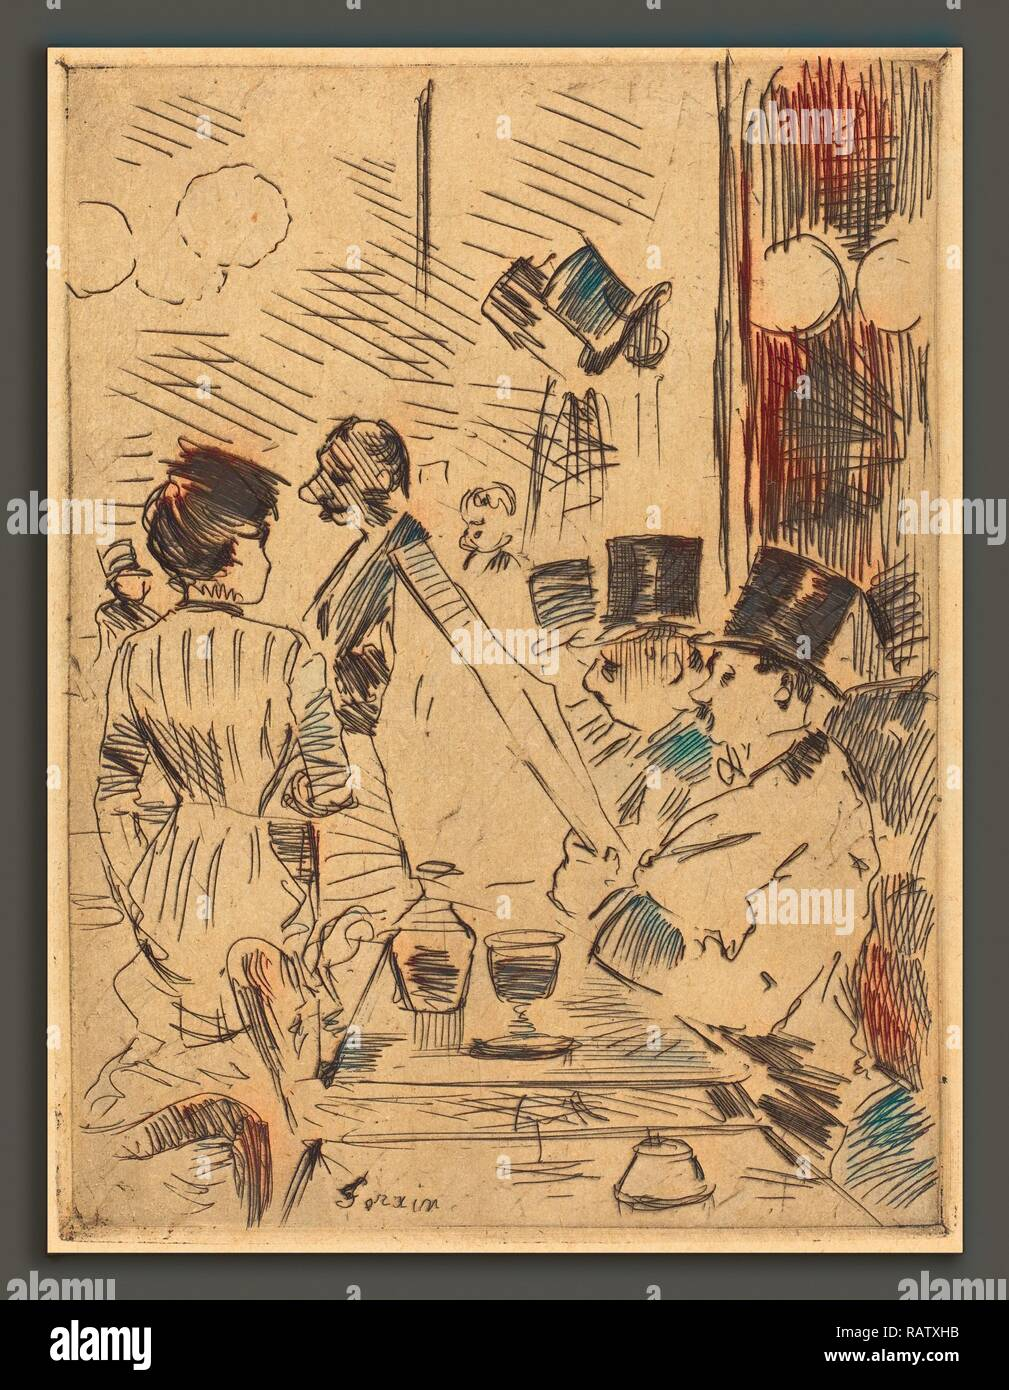 Jean-Louis Forain (French, 1852 - 1931), The Cafe of the New Athens, c. 1876, etching. Reimagined by Gibon. Classic reimagined - Stock Image